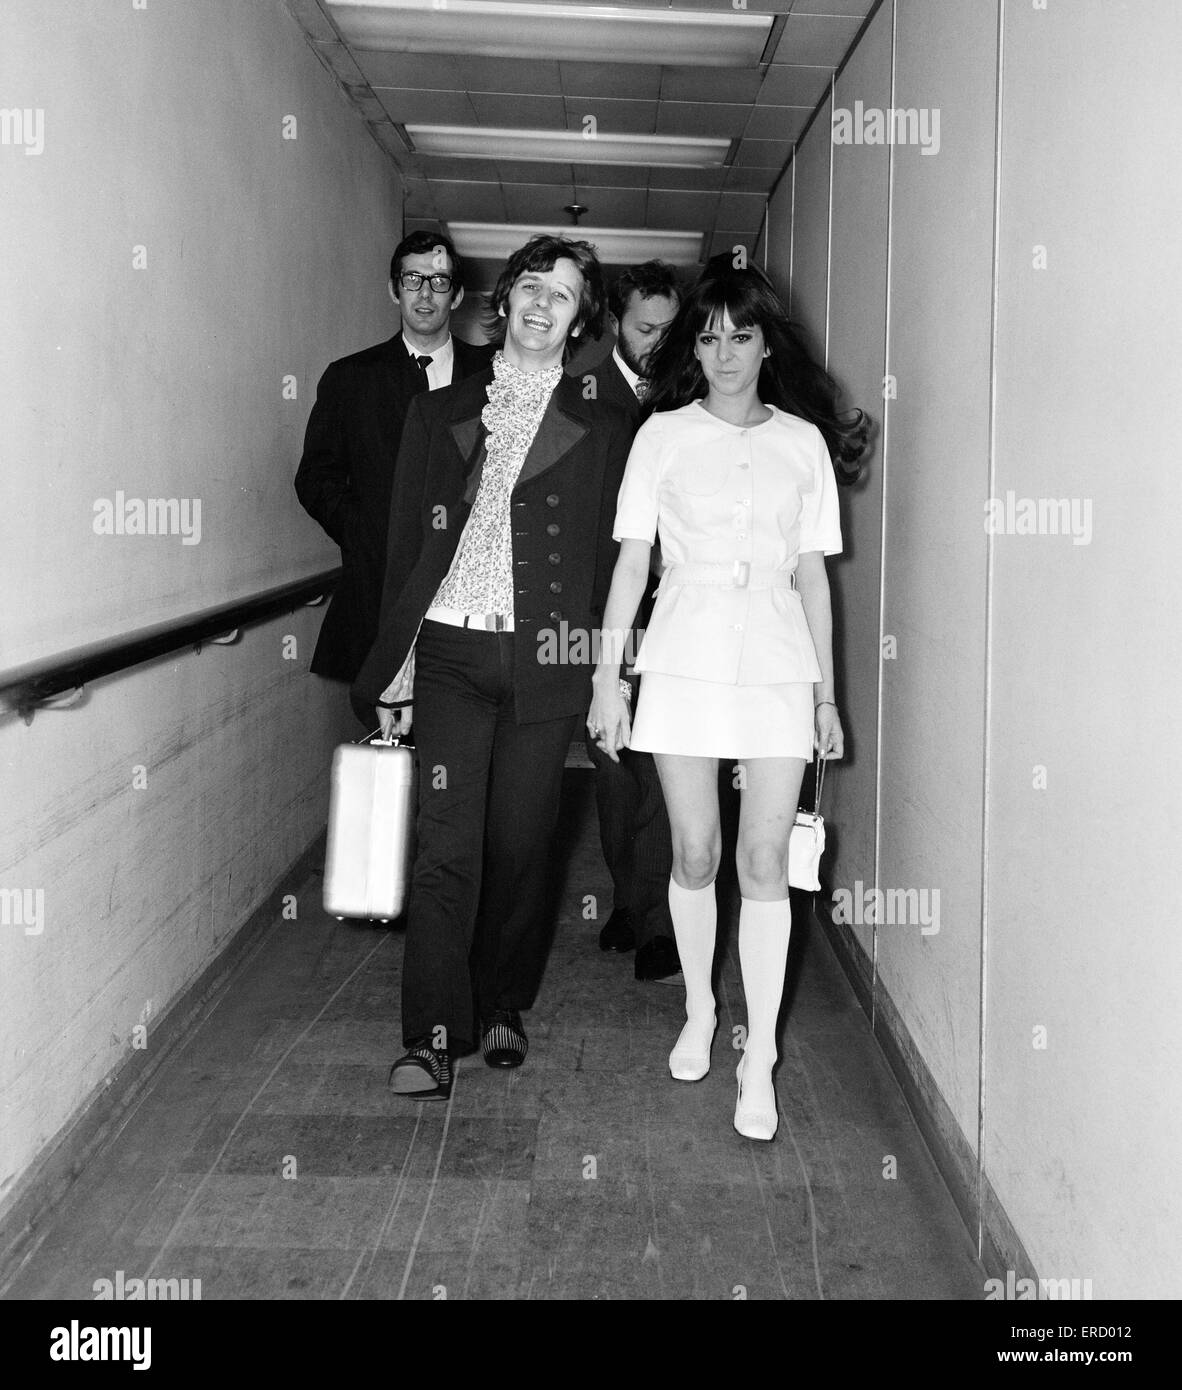 Ringo Starr and wife Maureen Starkey, on their way to Nice, to attend the 21st Cannes Film Festival in France, pictured - Stock Image